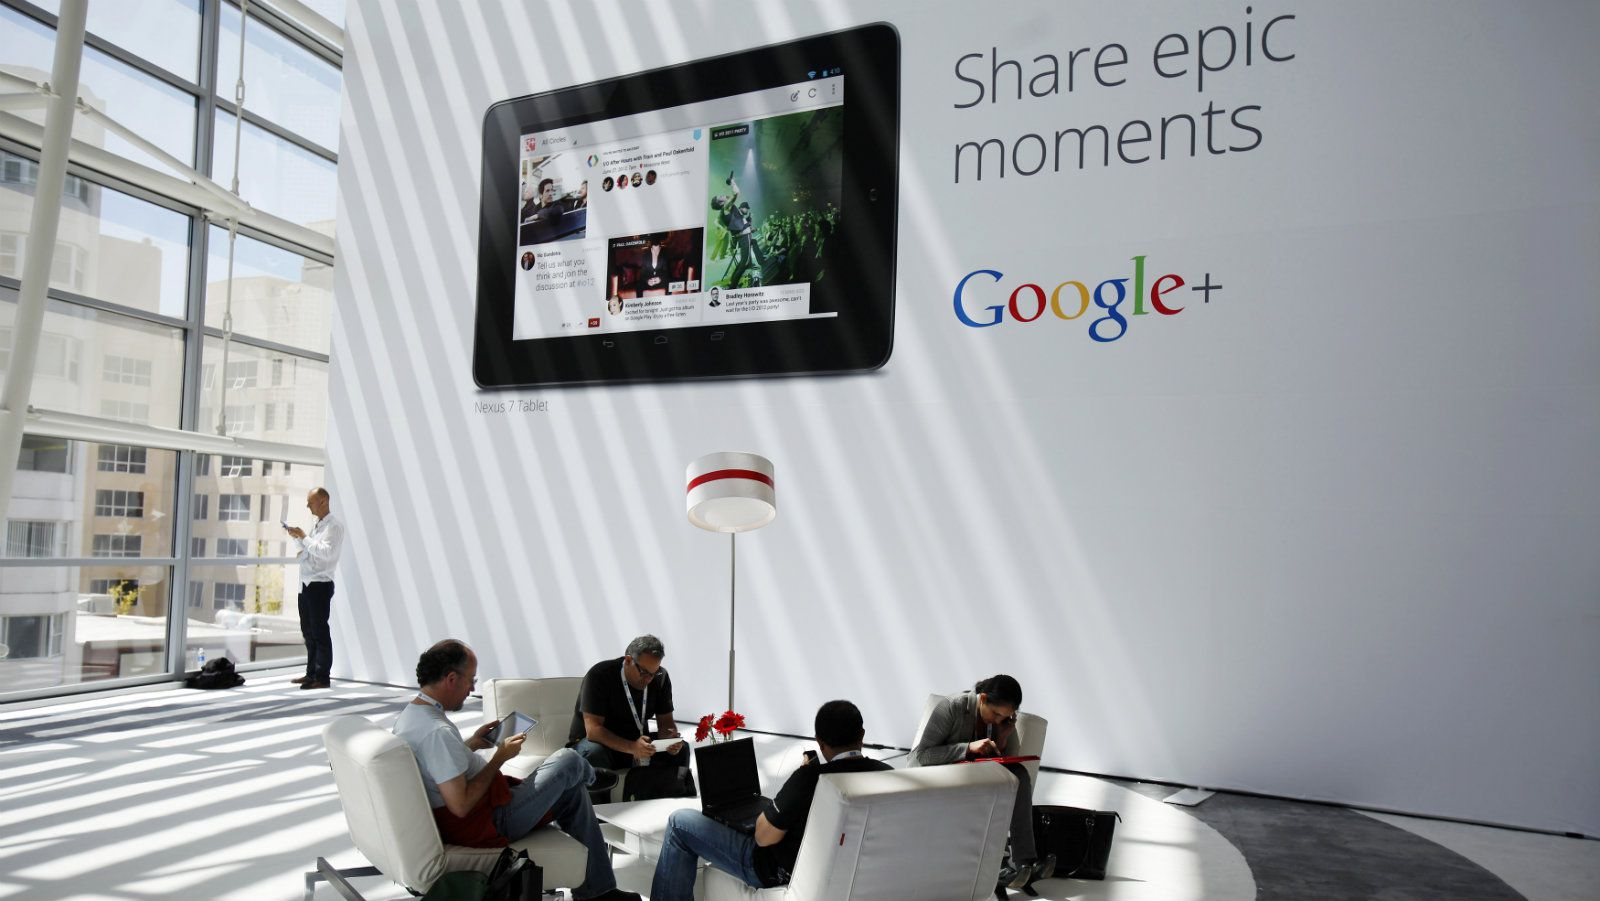 Attendees sits in front of a Google+ advertisment during Google I/O Conference at Moscone Center in San Francisco, California June 28, 2012. REUTERS/Stephen Lam (UNITED STATES)